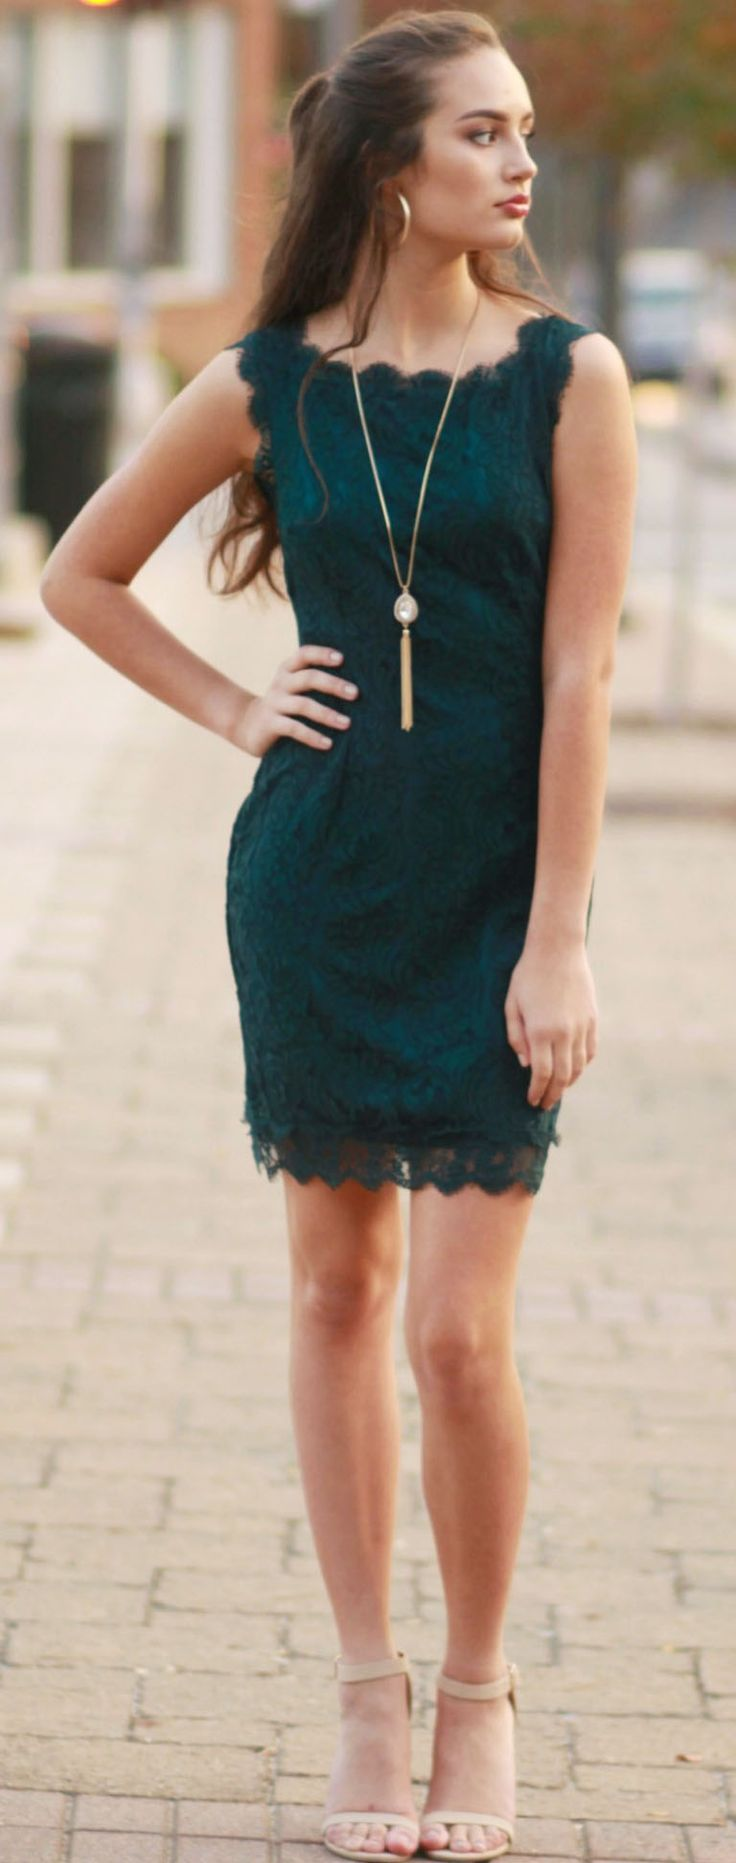 All Lace & Love Teal Dress  from Cousin Couture.